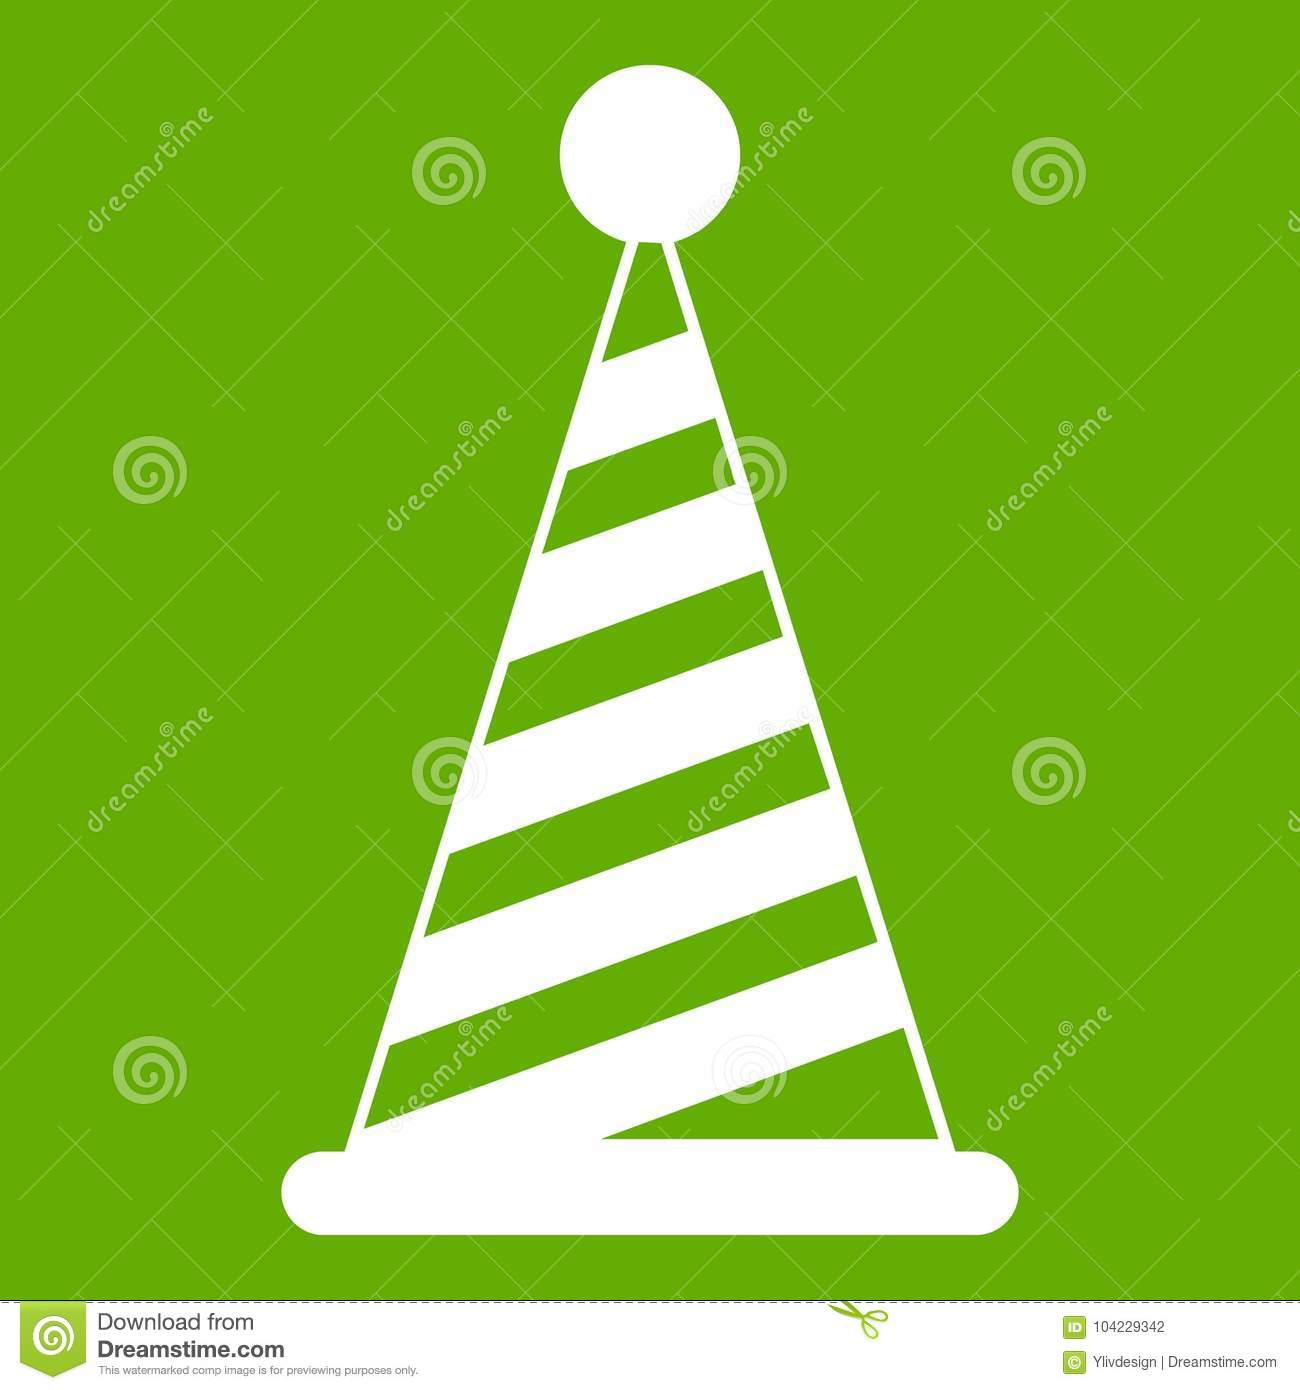 Party hat icon green